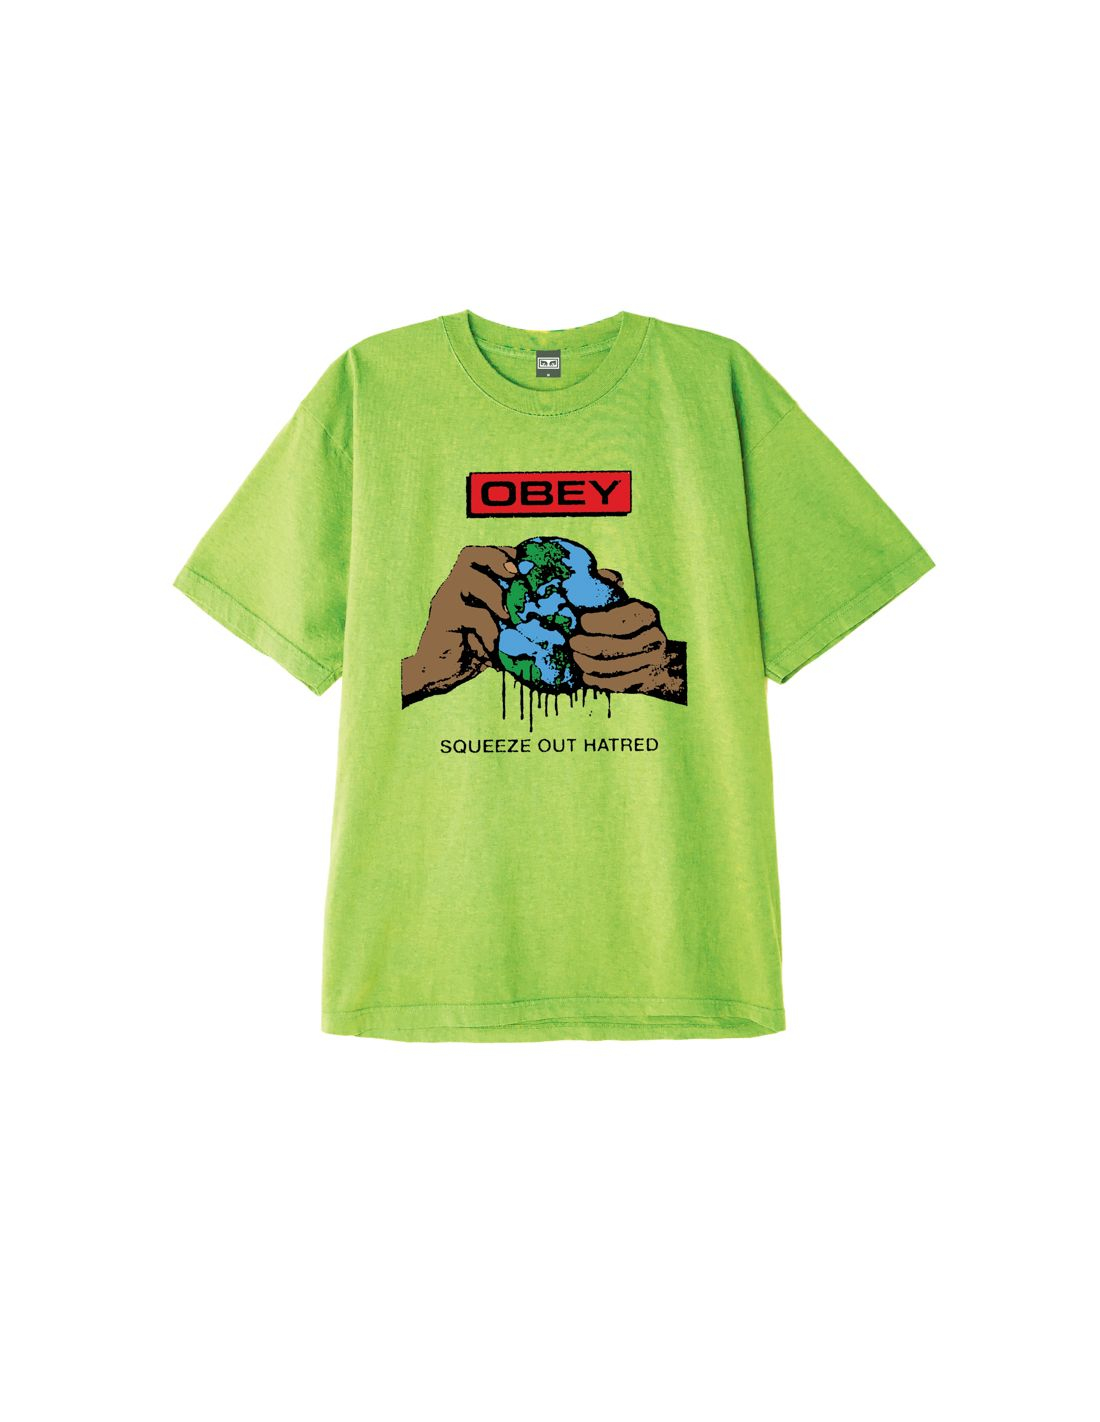 T-Shirt Obey Squeeze Out